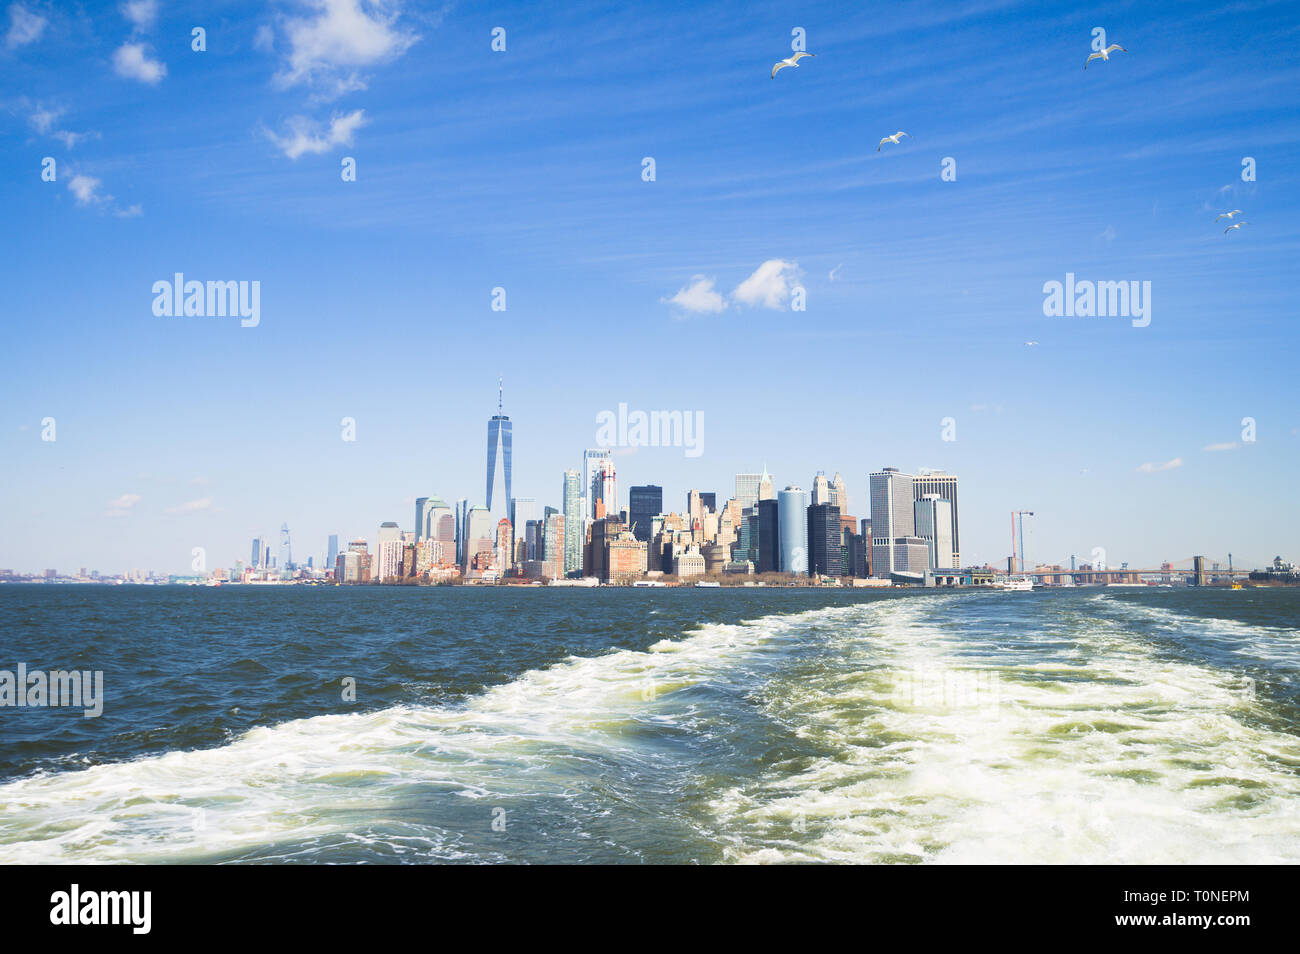 New York City Bus Routes Map, Manhattan Skyline As Seen From The Free To Use Staten Island Ferry With A Flock Of Seagulls Following, New York City Bus Routes Map